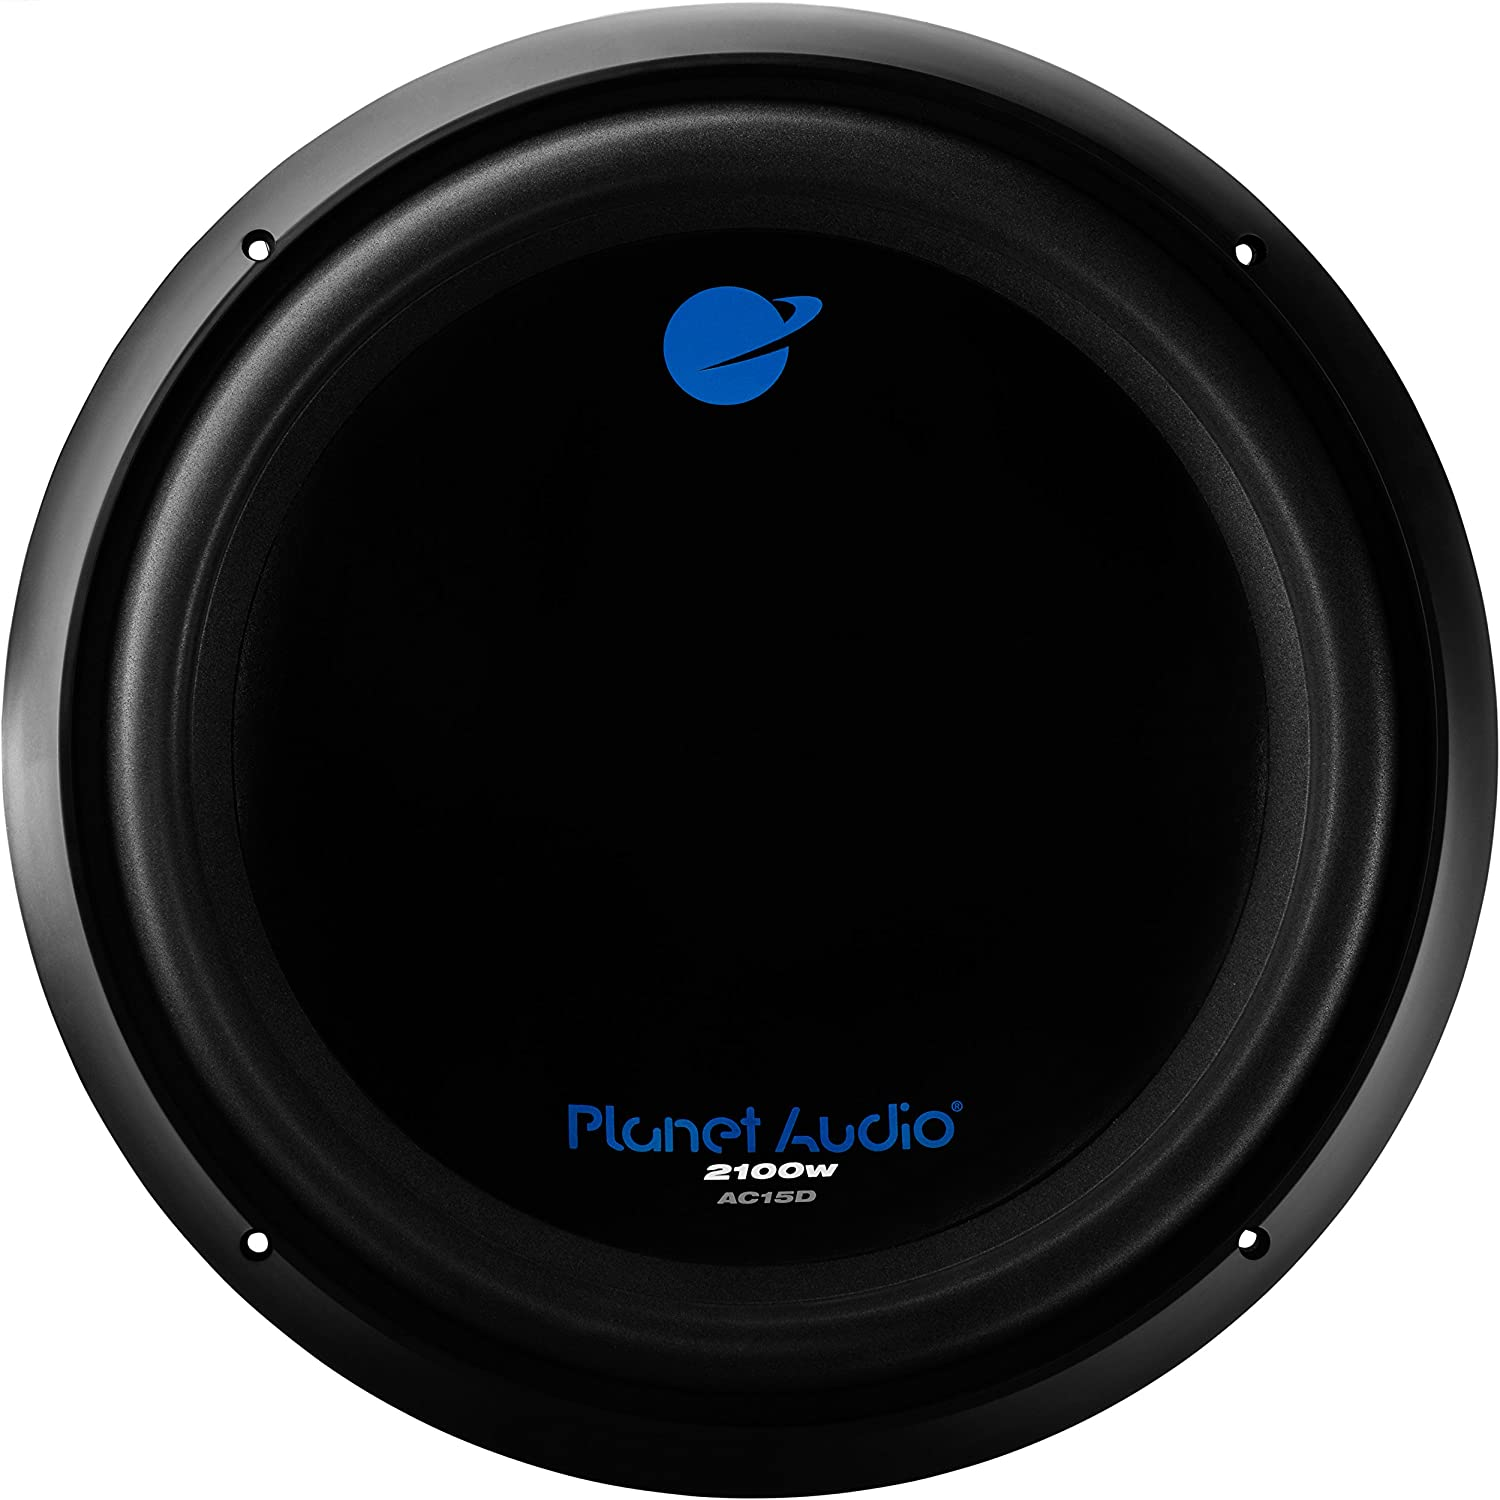 Planet Audio AC15D Car Subwoofer - 2100 Watts Maximum Power, 15 Inch, Dual 4 Ohm Voice Coil, Easy Mounting, Sold Individually